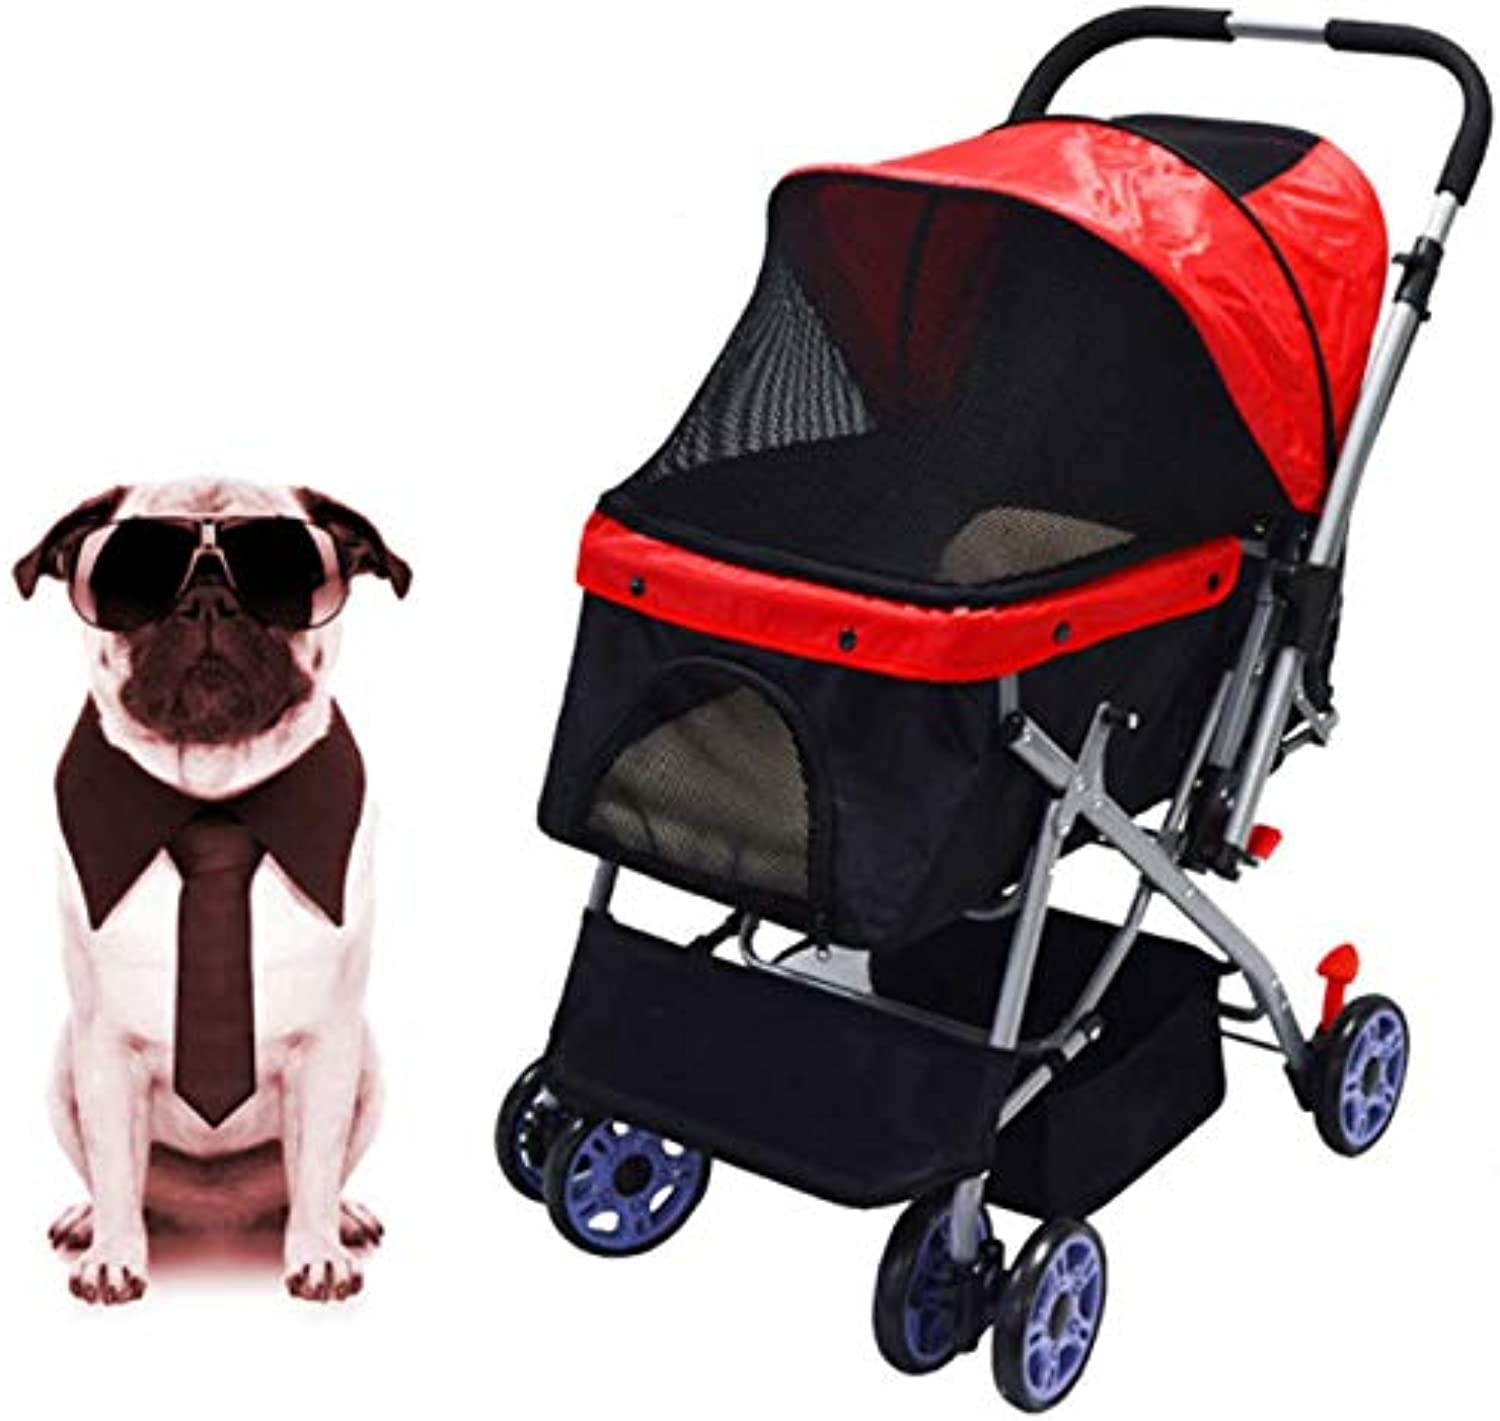 QIAOXC Front And Rear Adjustable Handle Folding Fourwheeled Pet Stroller Front Wheel 360degree redating Pet Travel Stroller Onetouch Assembly And Storage